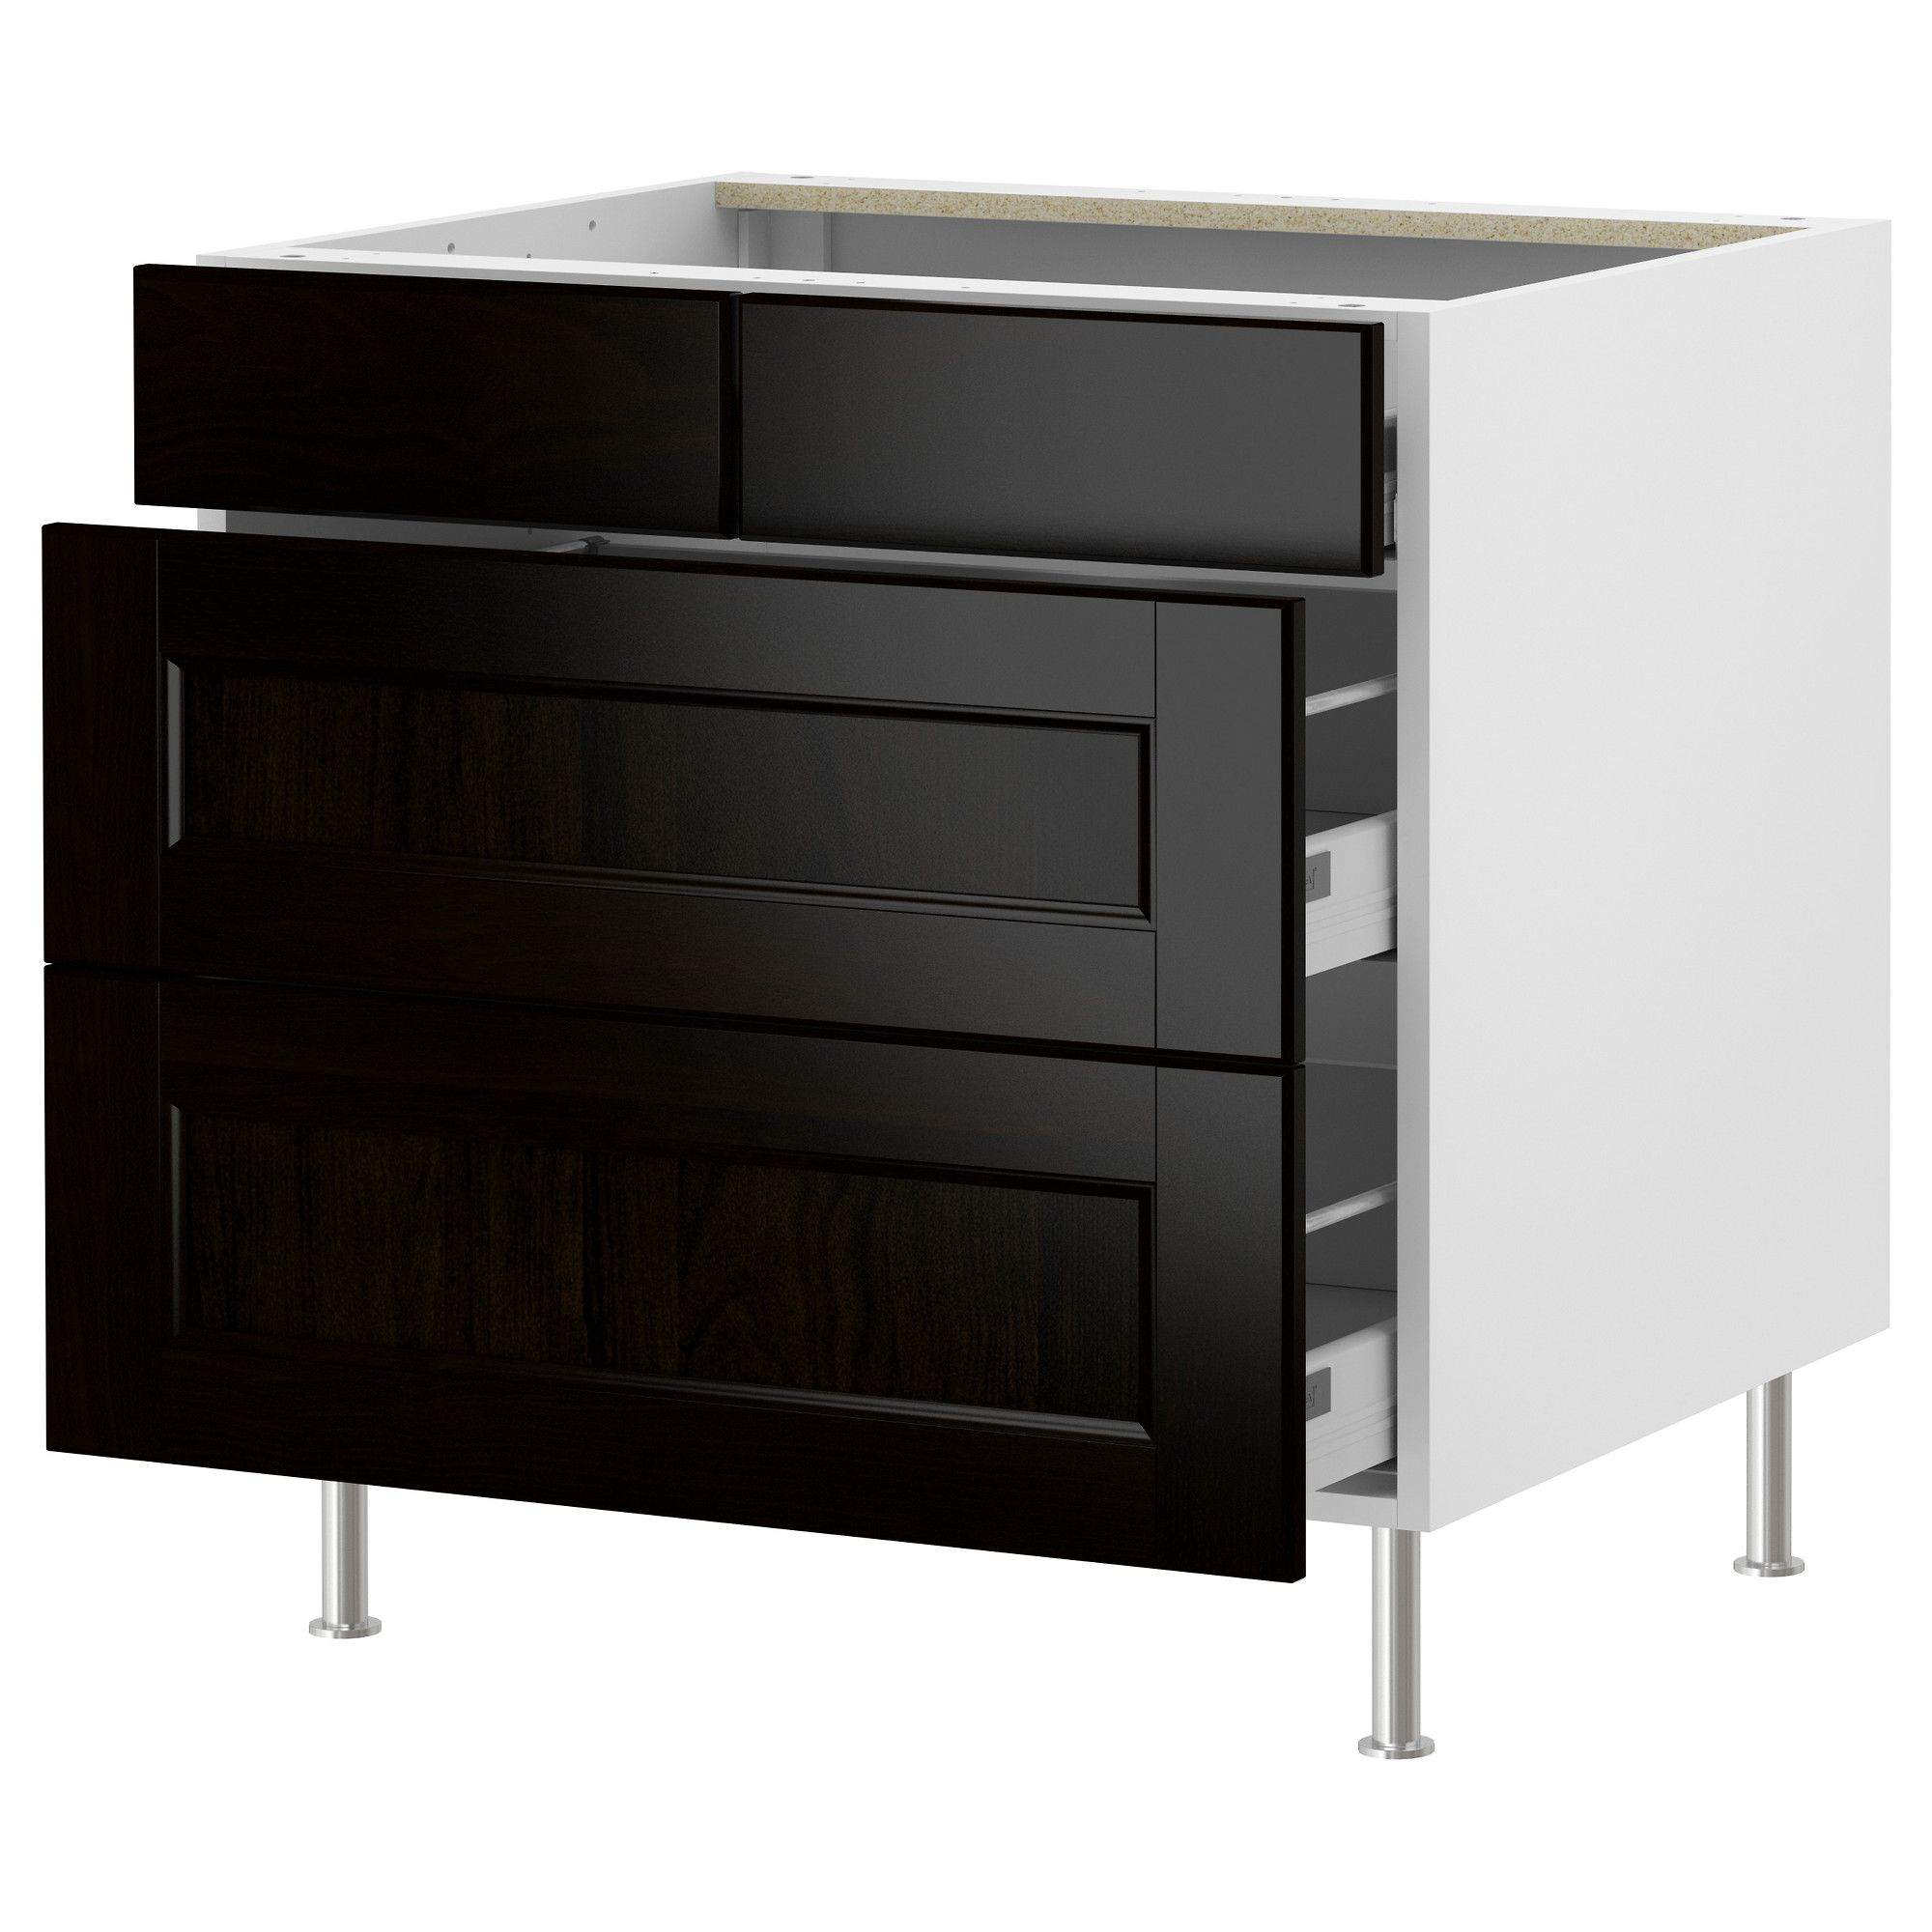 Furniture and Home Furnishings   Kitchen base cabinets ...